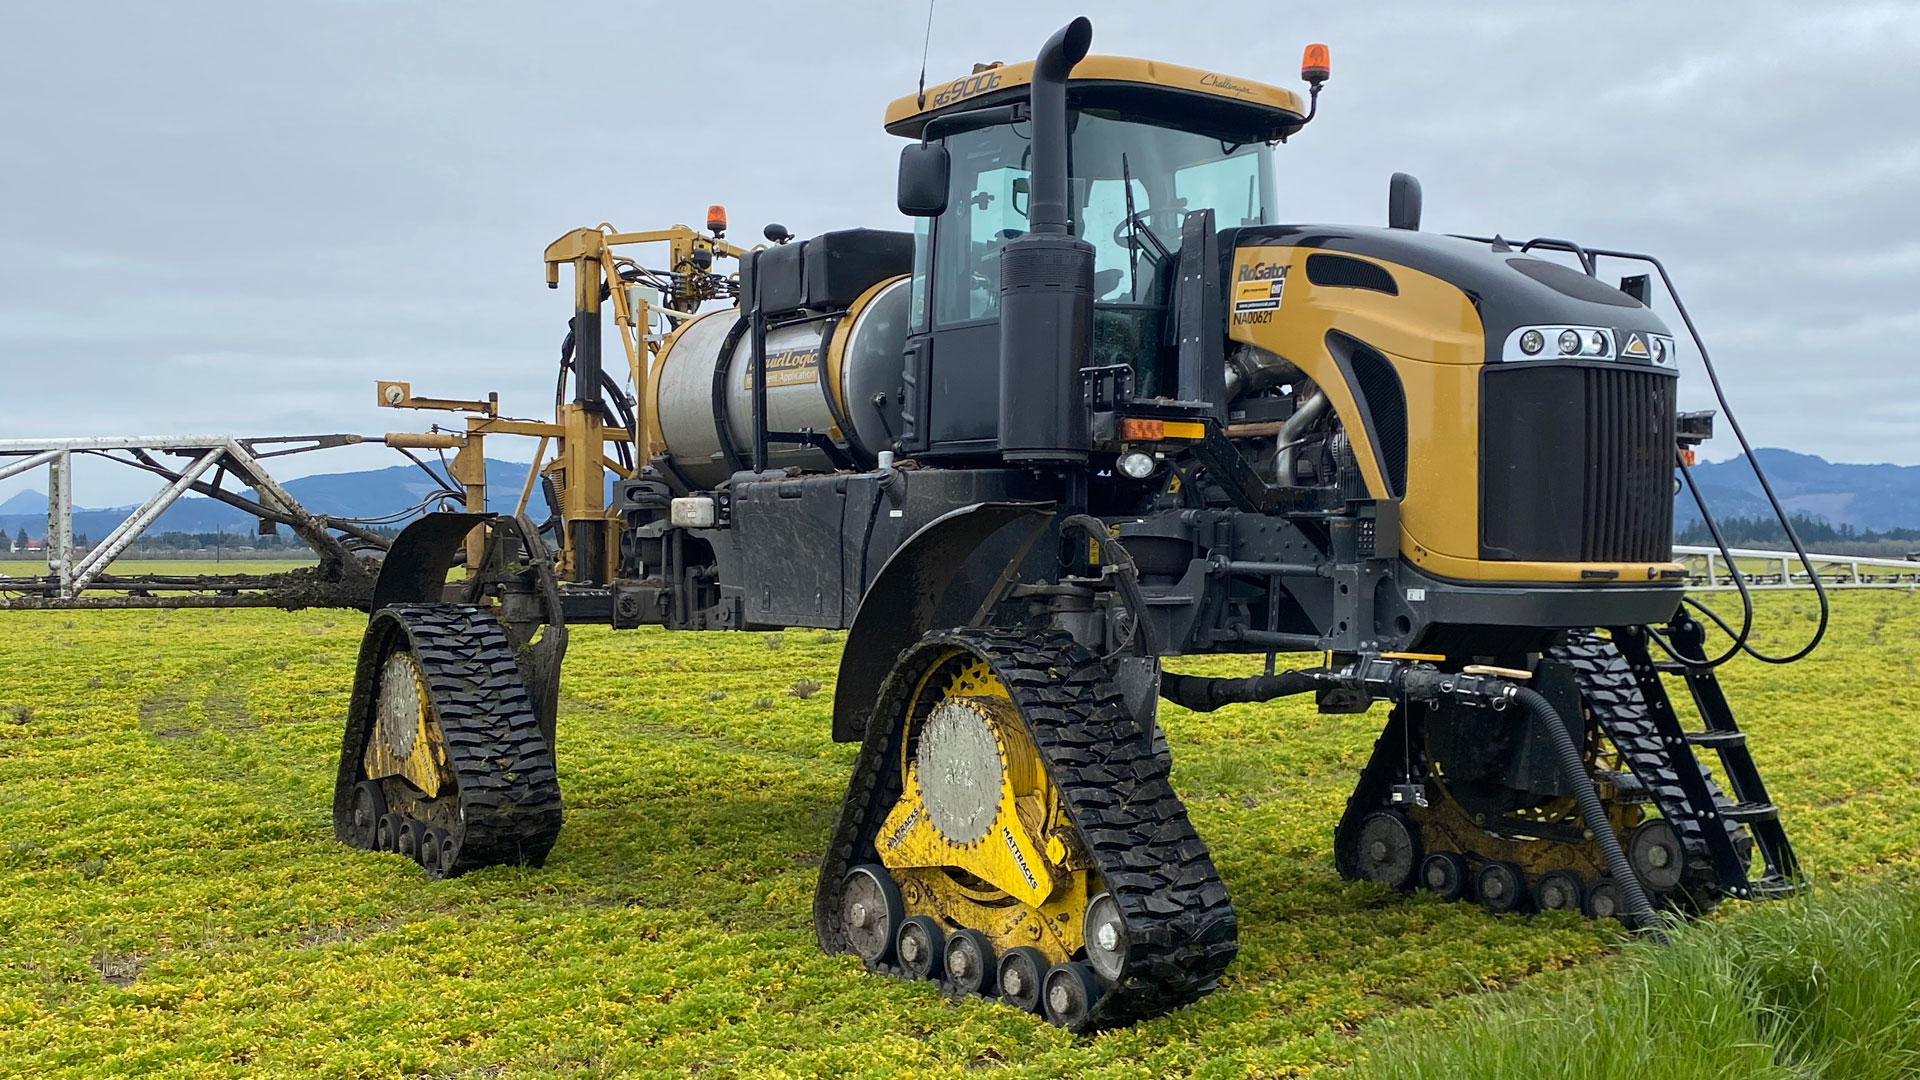 9090-AA Series Tracks on a RoGator RG900C